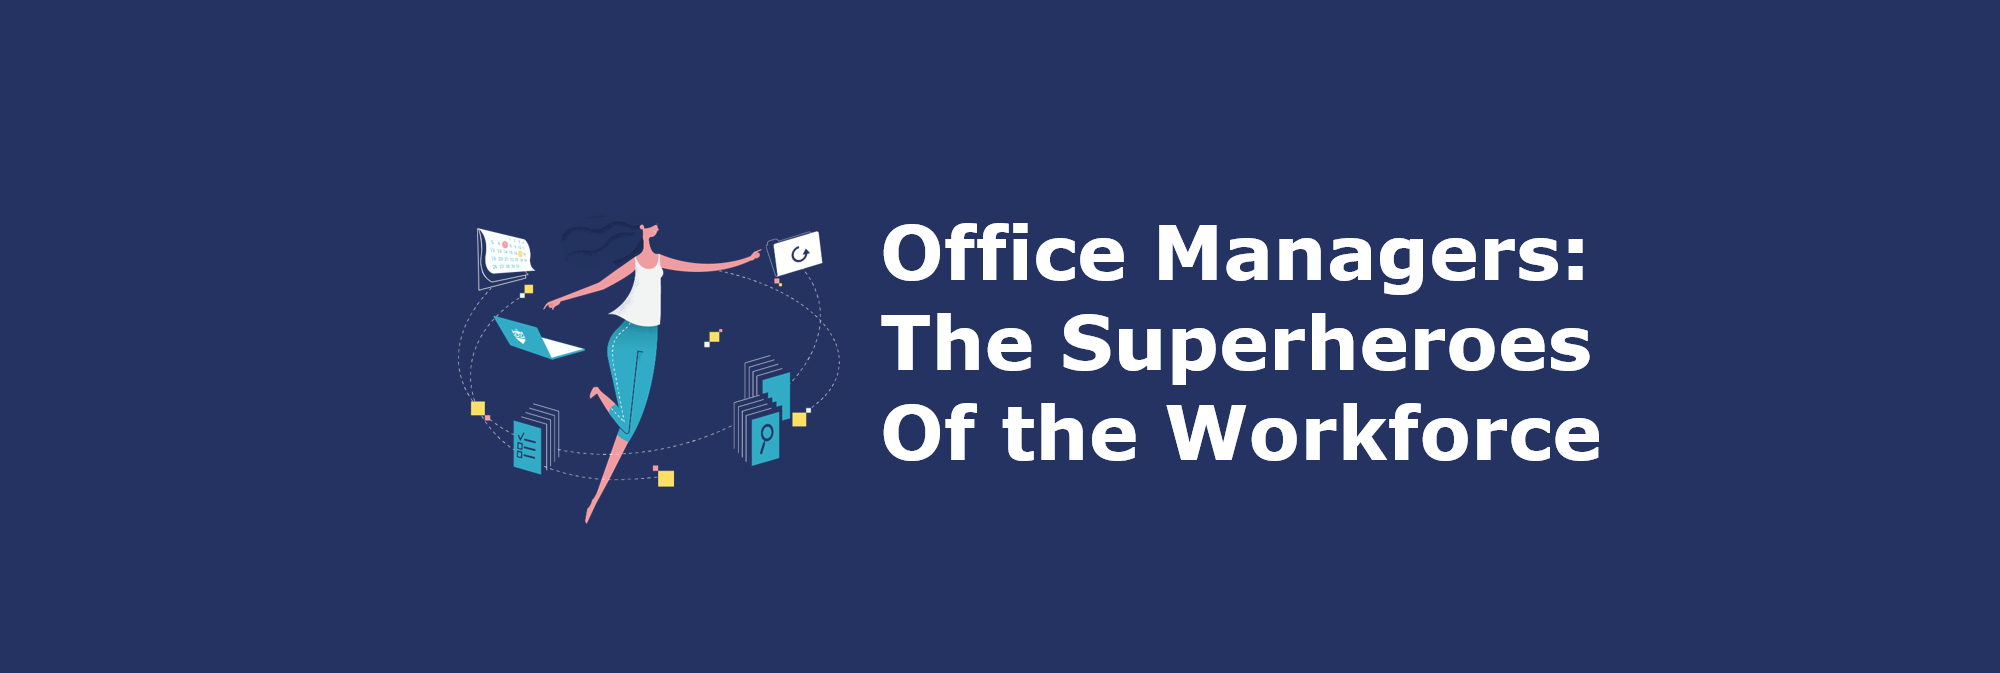 office managers super heroes head zendoc